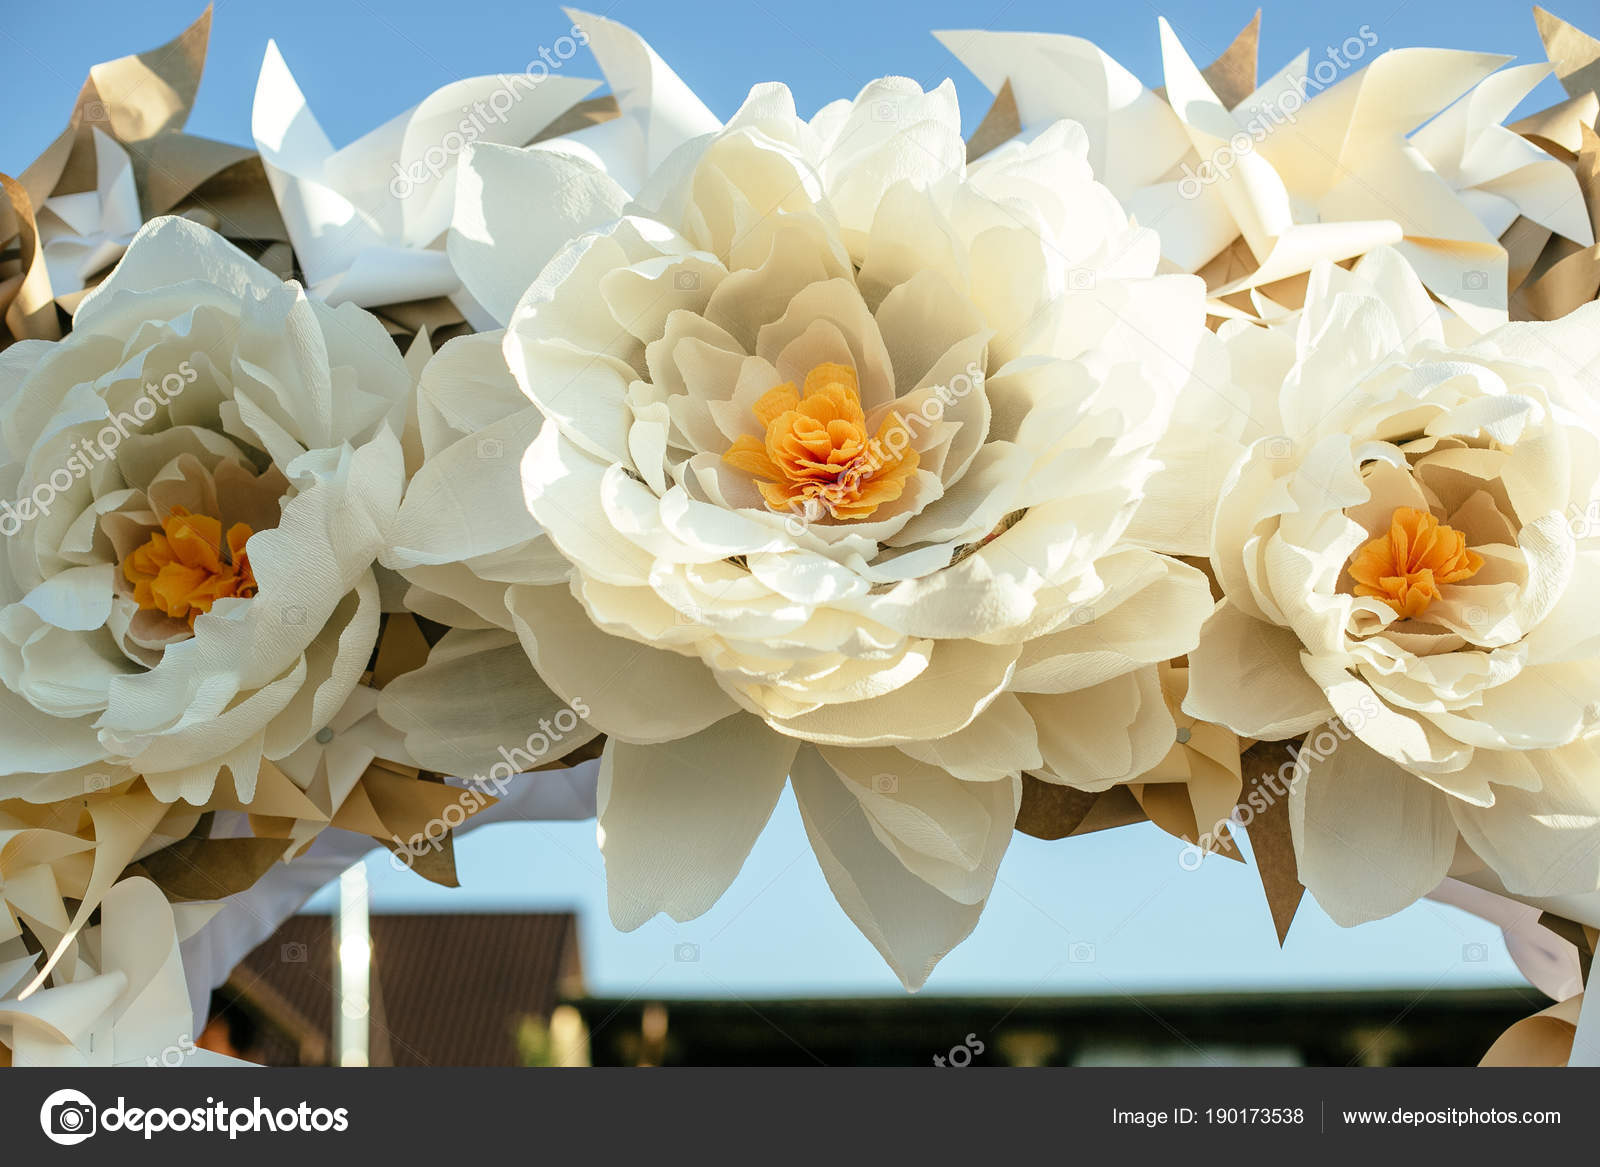 Paper Flowers In Wedding Decor Luxury Wedding Decorations For